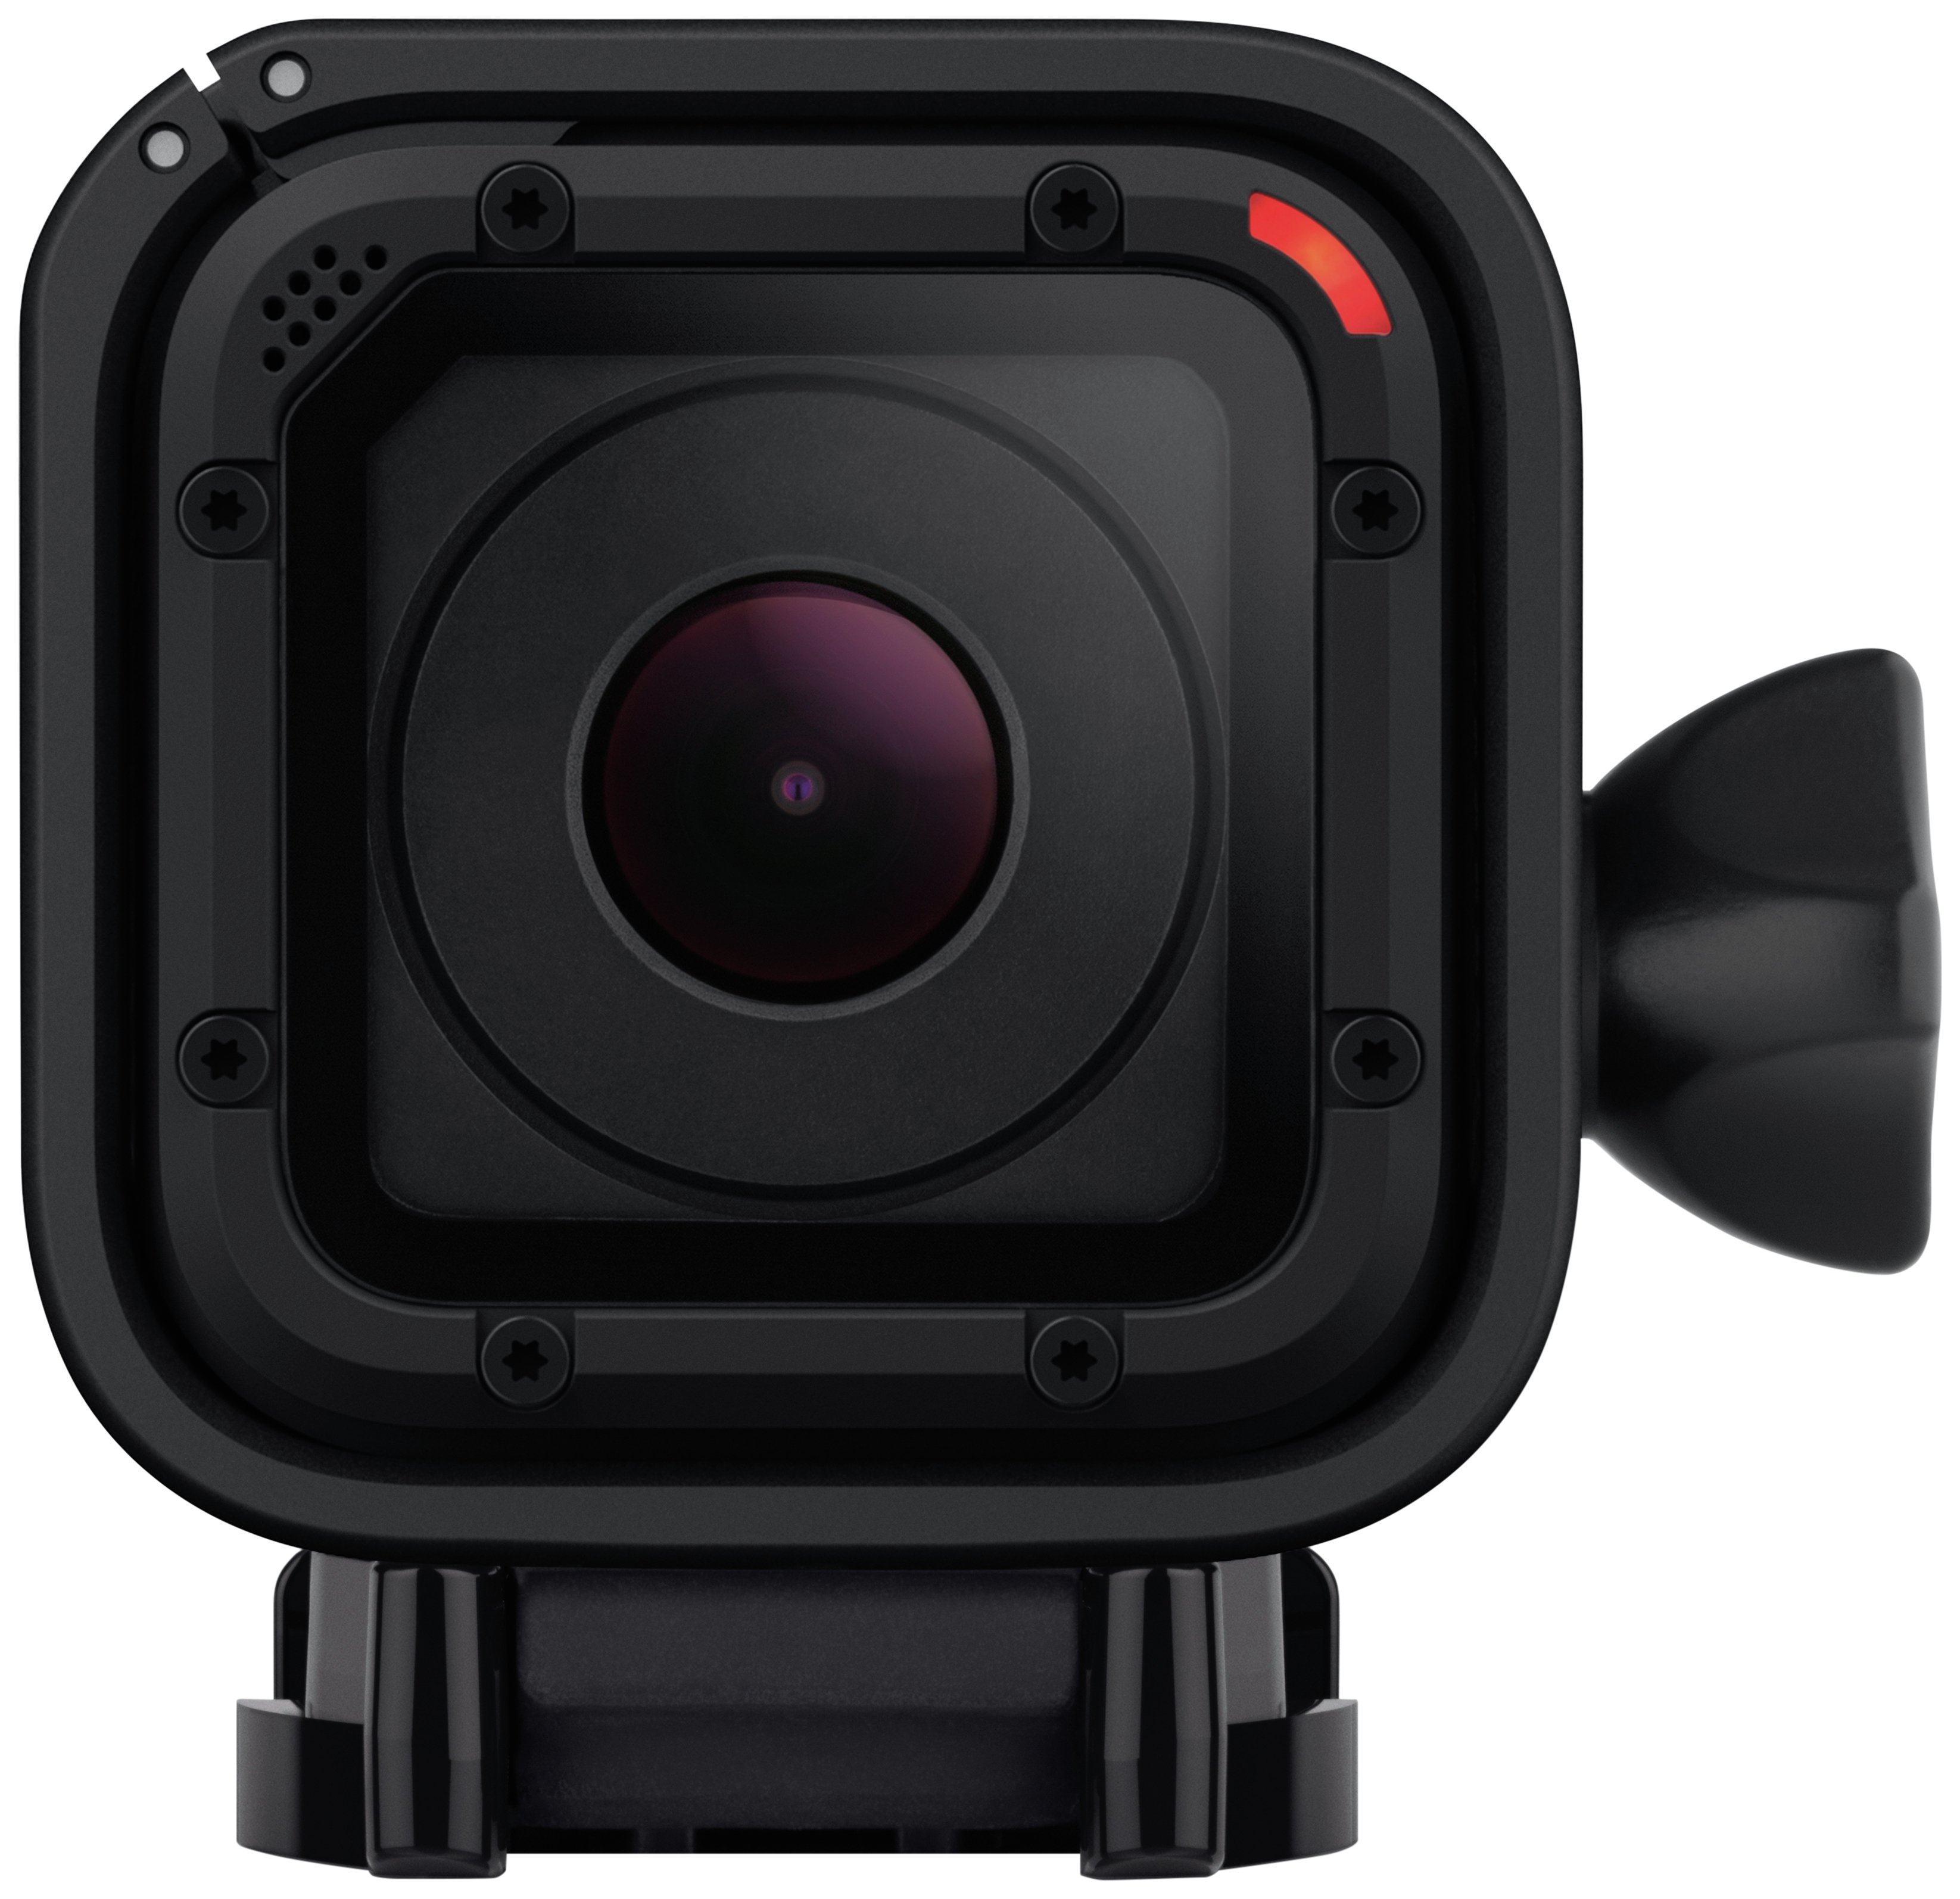 GoPro - HERO4 Session Full HD Action Camera/Camcorder